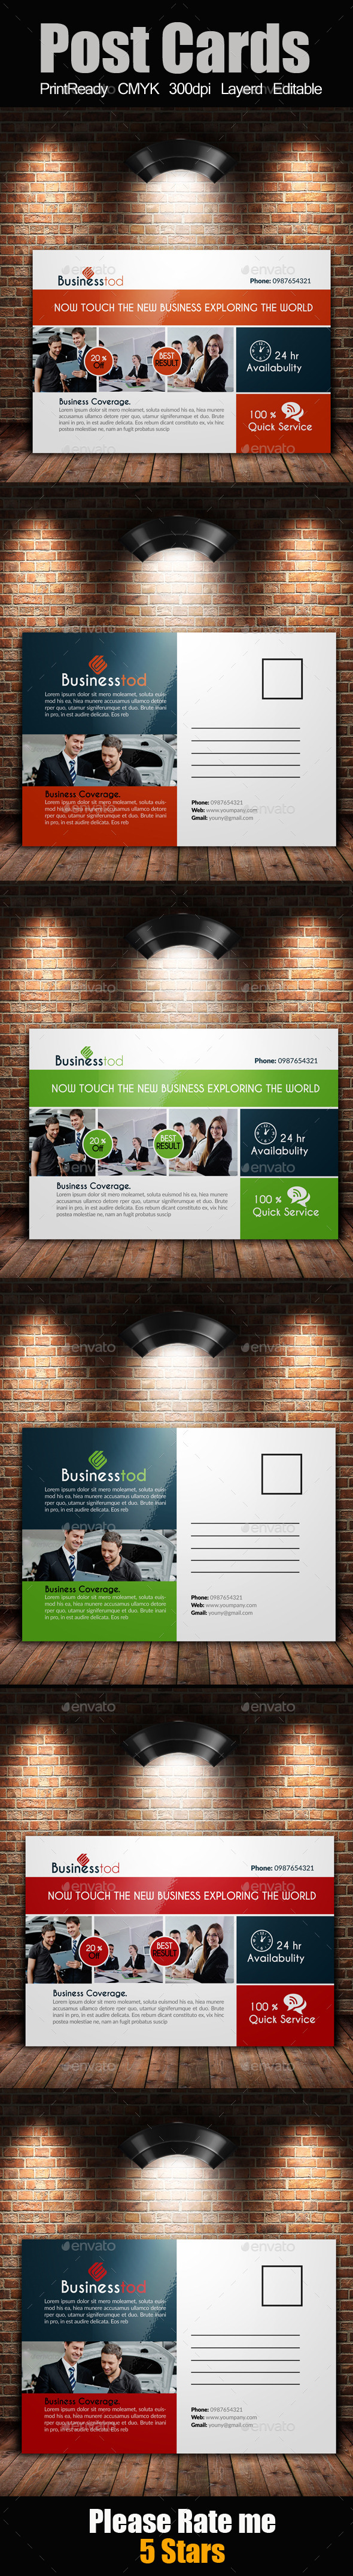 Multi Use Business Post Cards  - Cards & Invites Print Templates